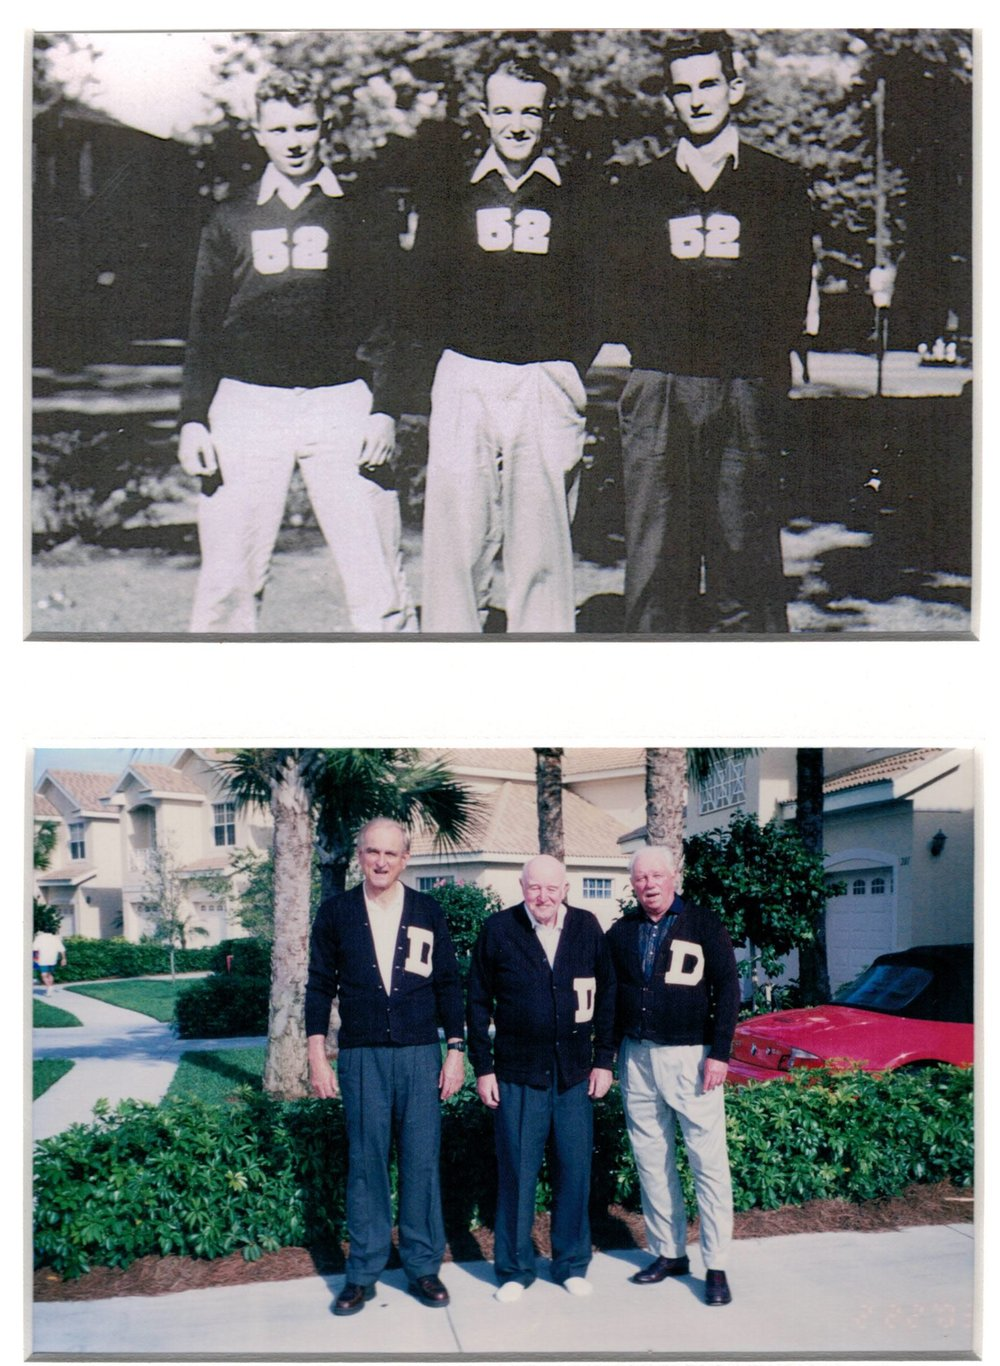 Top photo: Don Bren, Zeke Ellis and Irvin Harlamert pose in their athletic sweaters with their graduation year, 1952. Bottom photo: Harlamert, Zeke and Don. --- photo courtesy of Harlamert